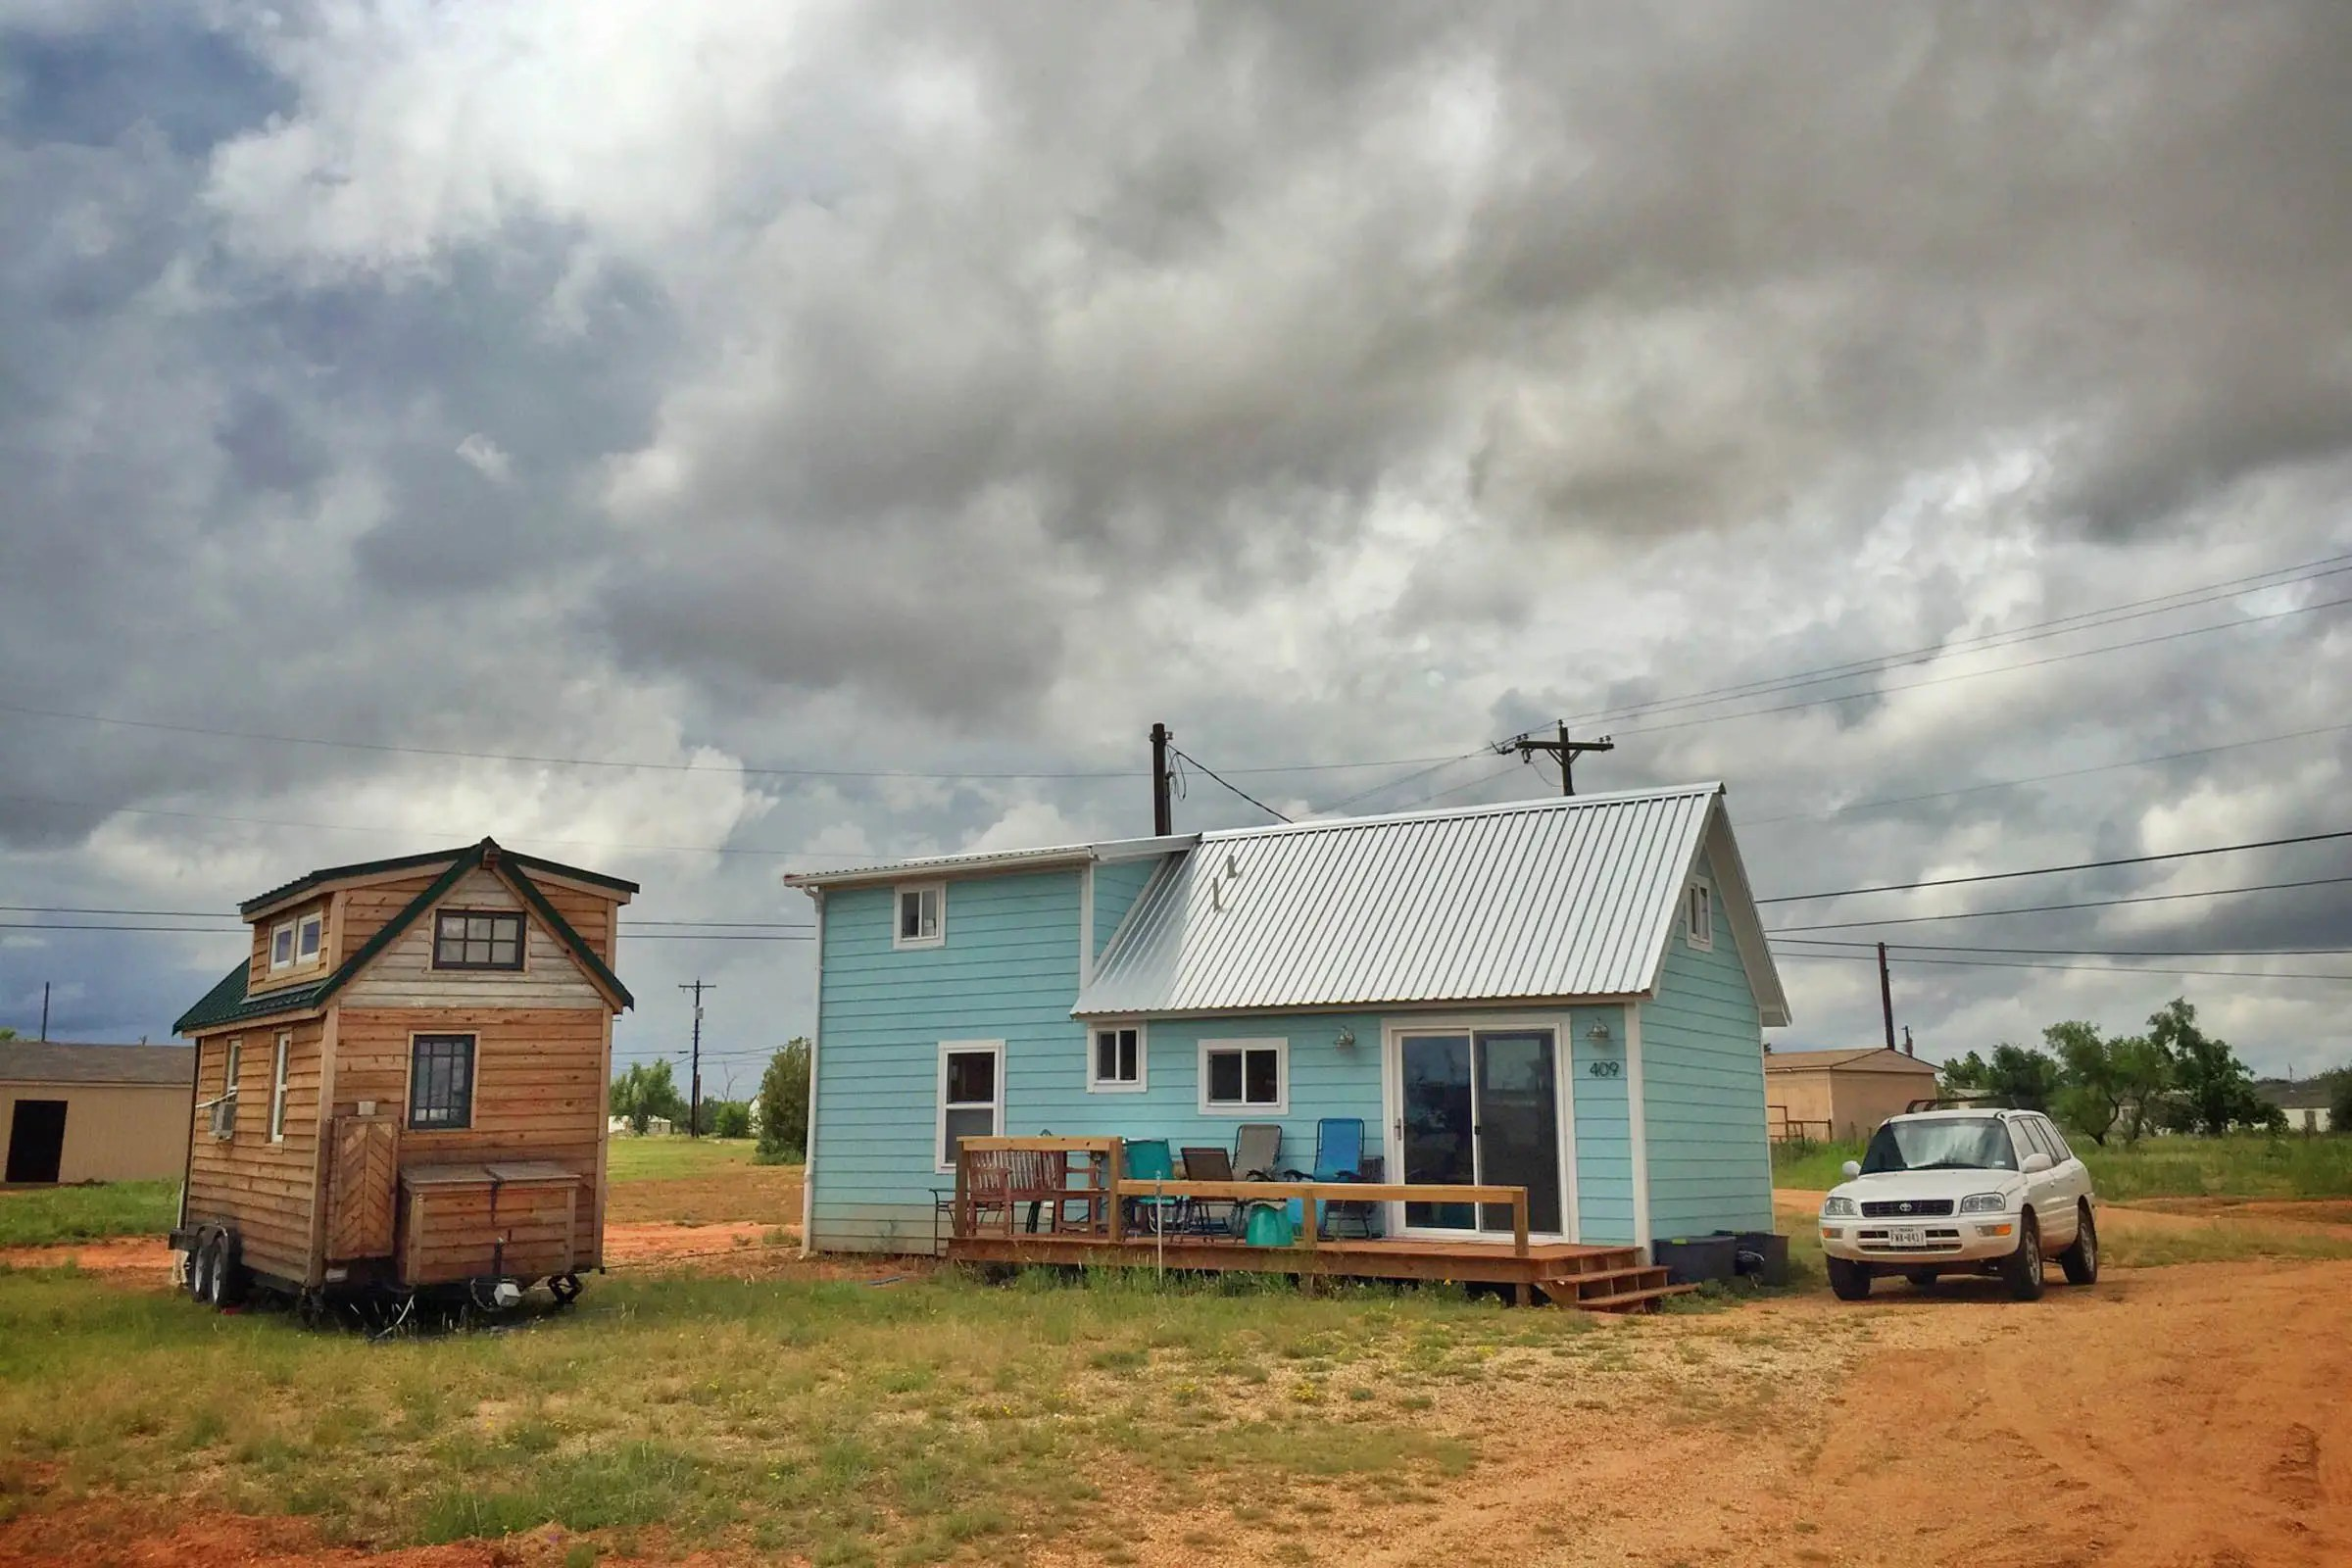 In Spur, Texas, they found a community of tiny homeowners who want to make their small town the tiny house capital of the US. There will be 20 homes by the end of the year.